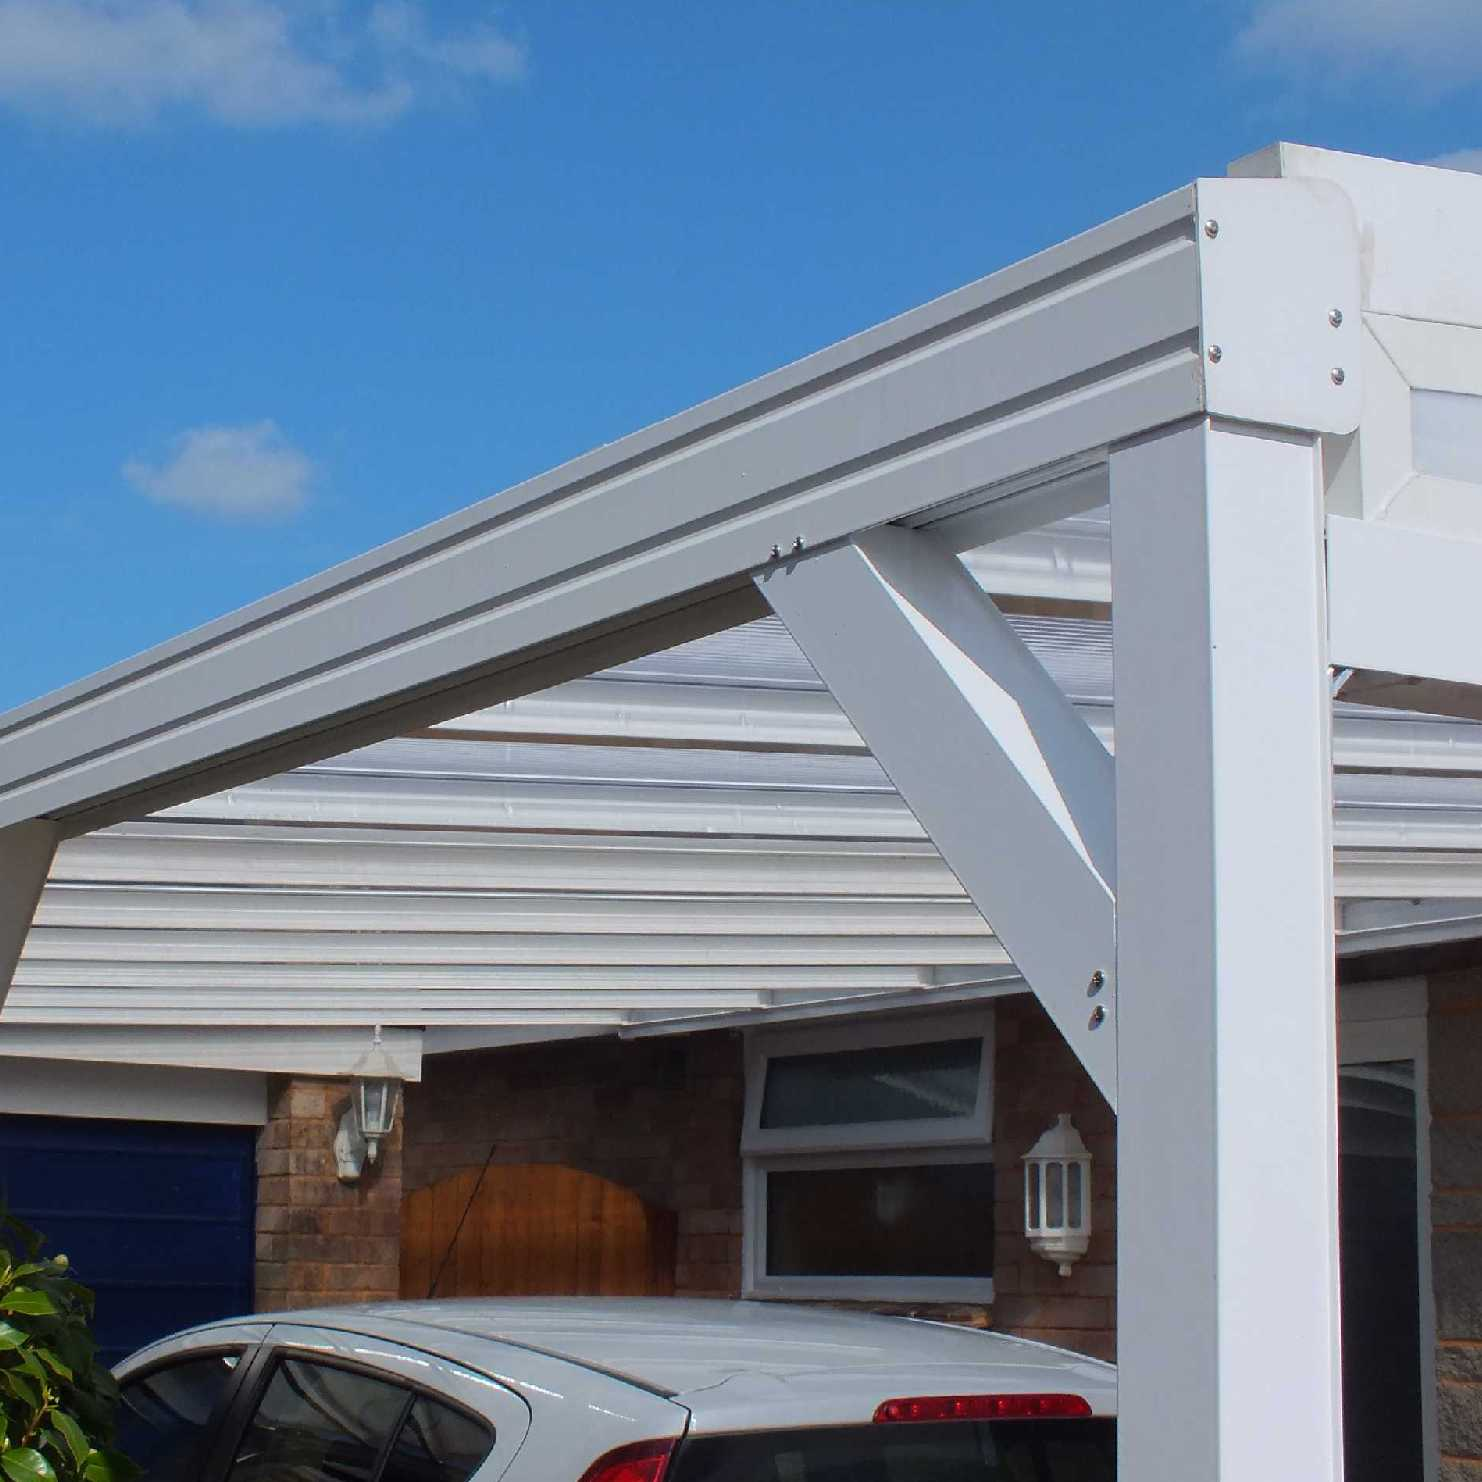 Great deals on Omega Smart Lean-To Canopy with 16mm Polycarbonate Glazing - 6.3m (W) x 4.0m (P), (4) Supporting Posts